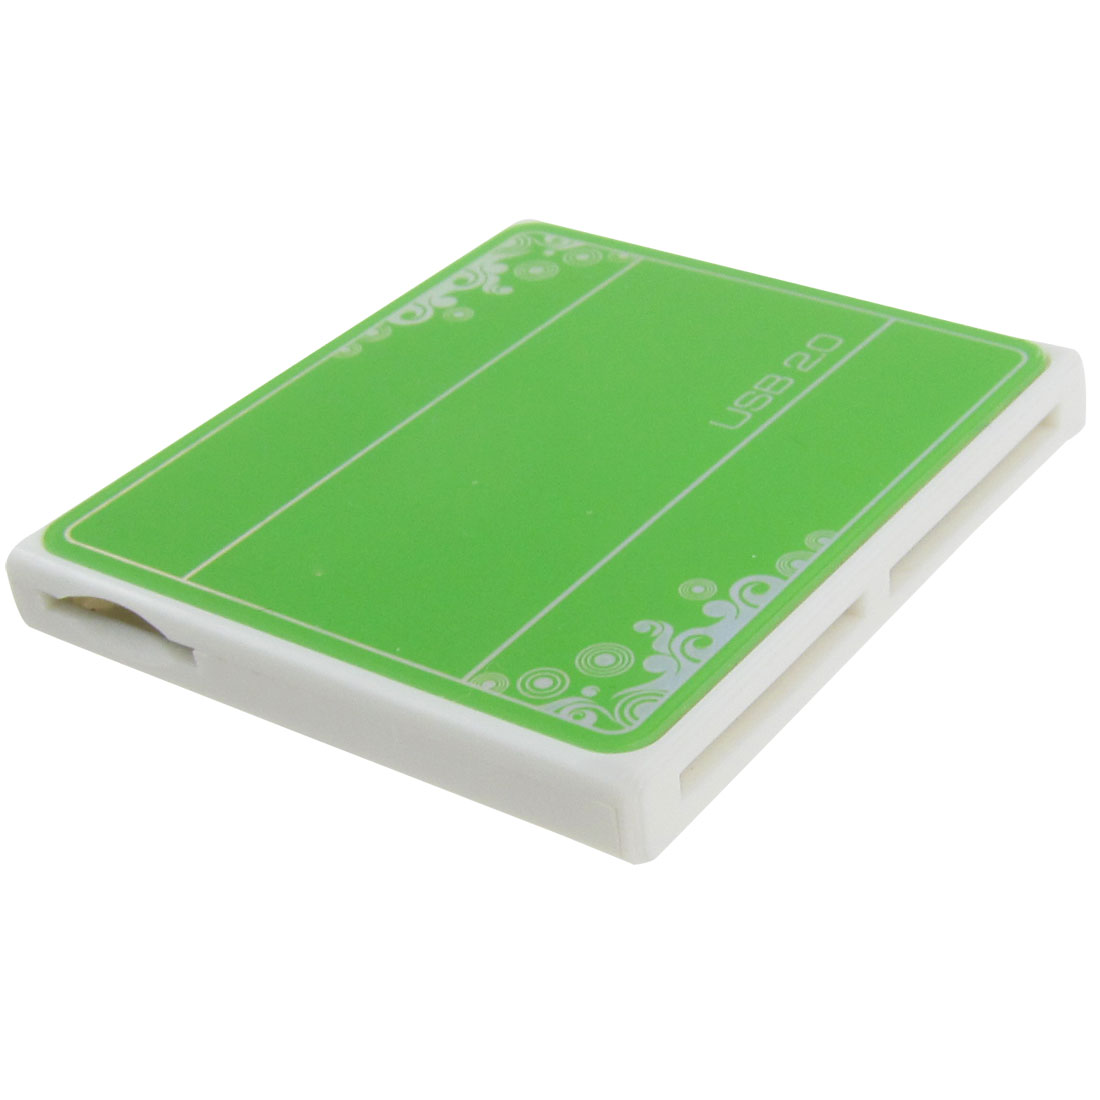 Green Plastic Case USB 2.0 4 Slots SD MMC M2 T-flash MS Card Reader